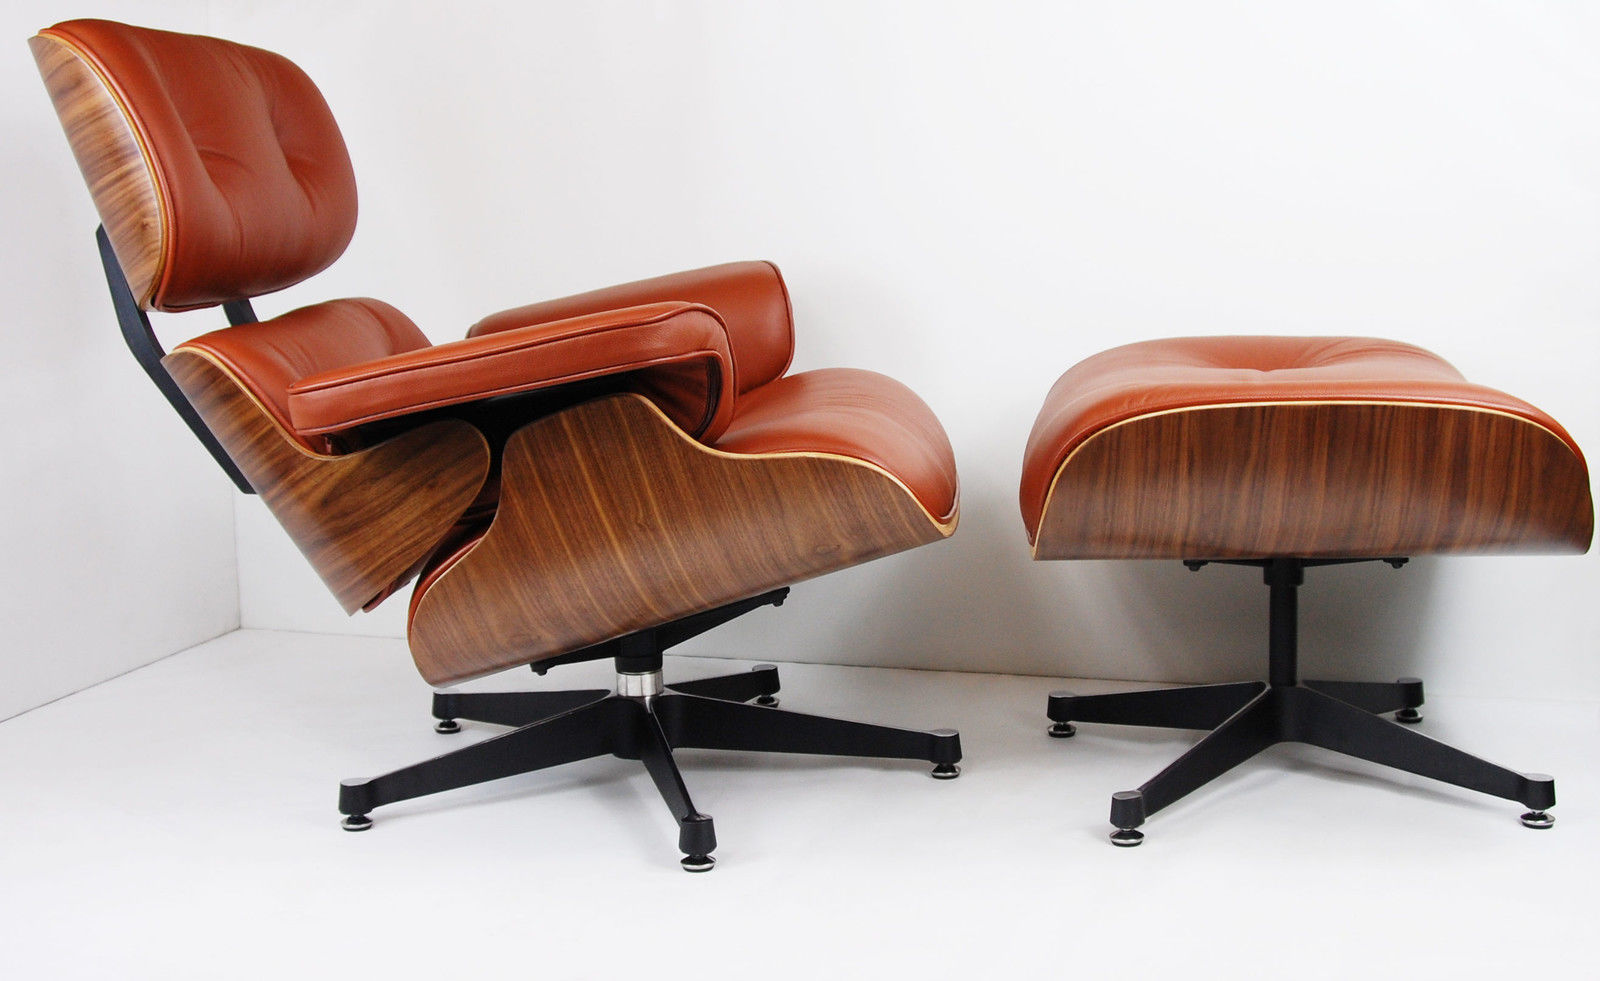 Chair Eames Charles Eames Chair - Walnut - Brown Tan Leather #2 - Charles Eames